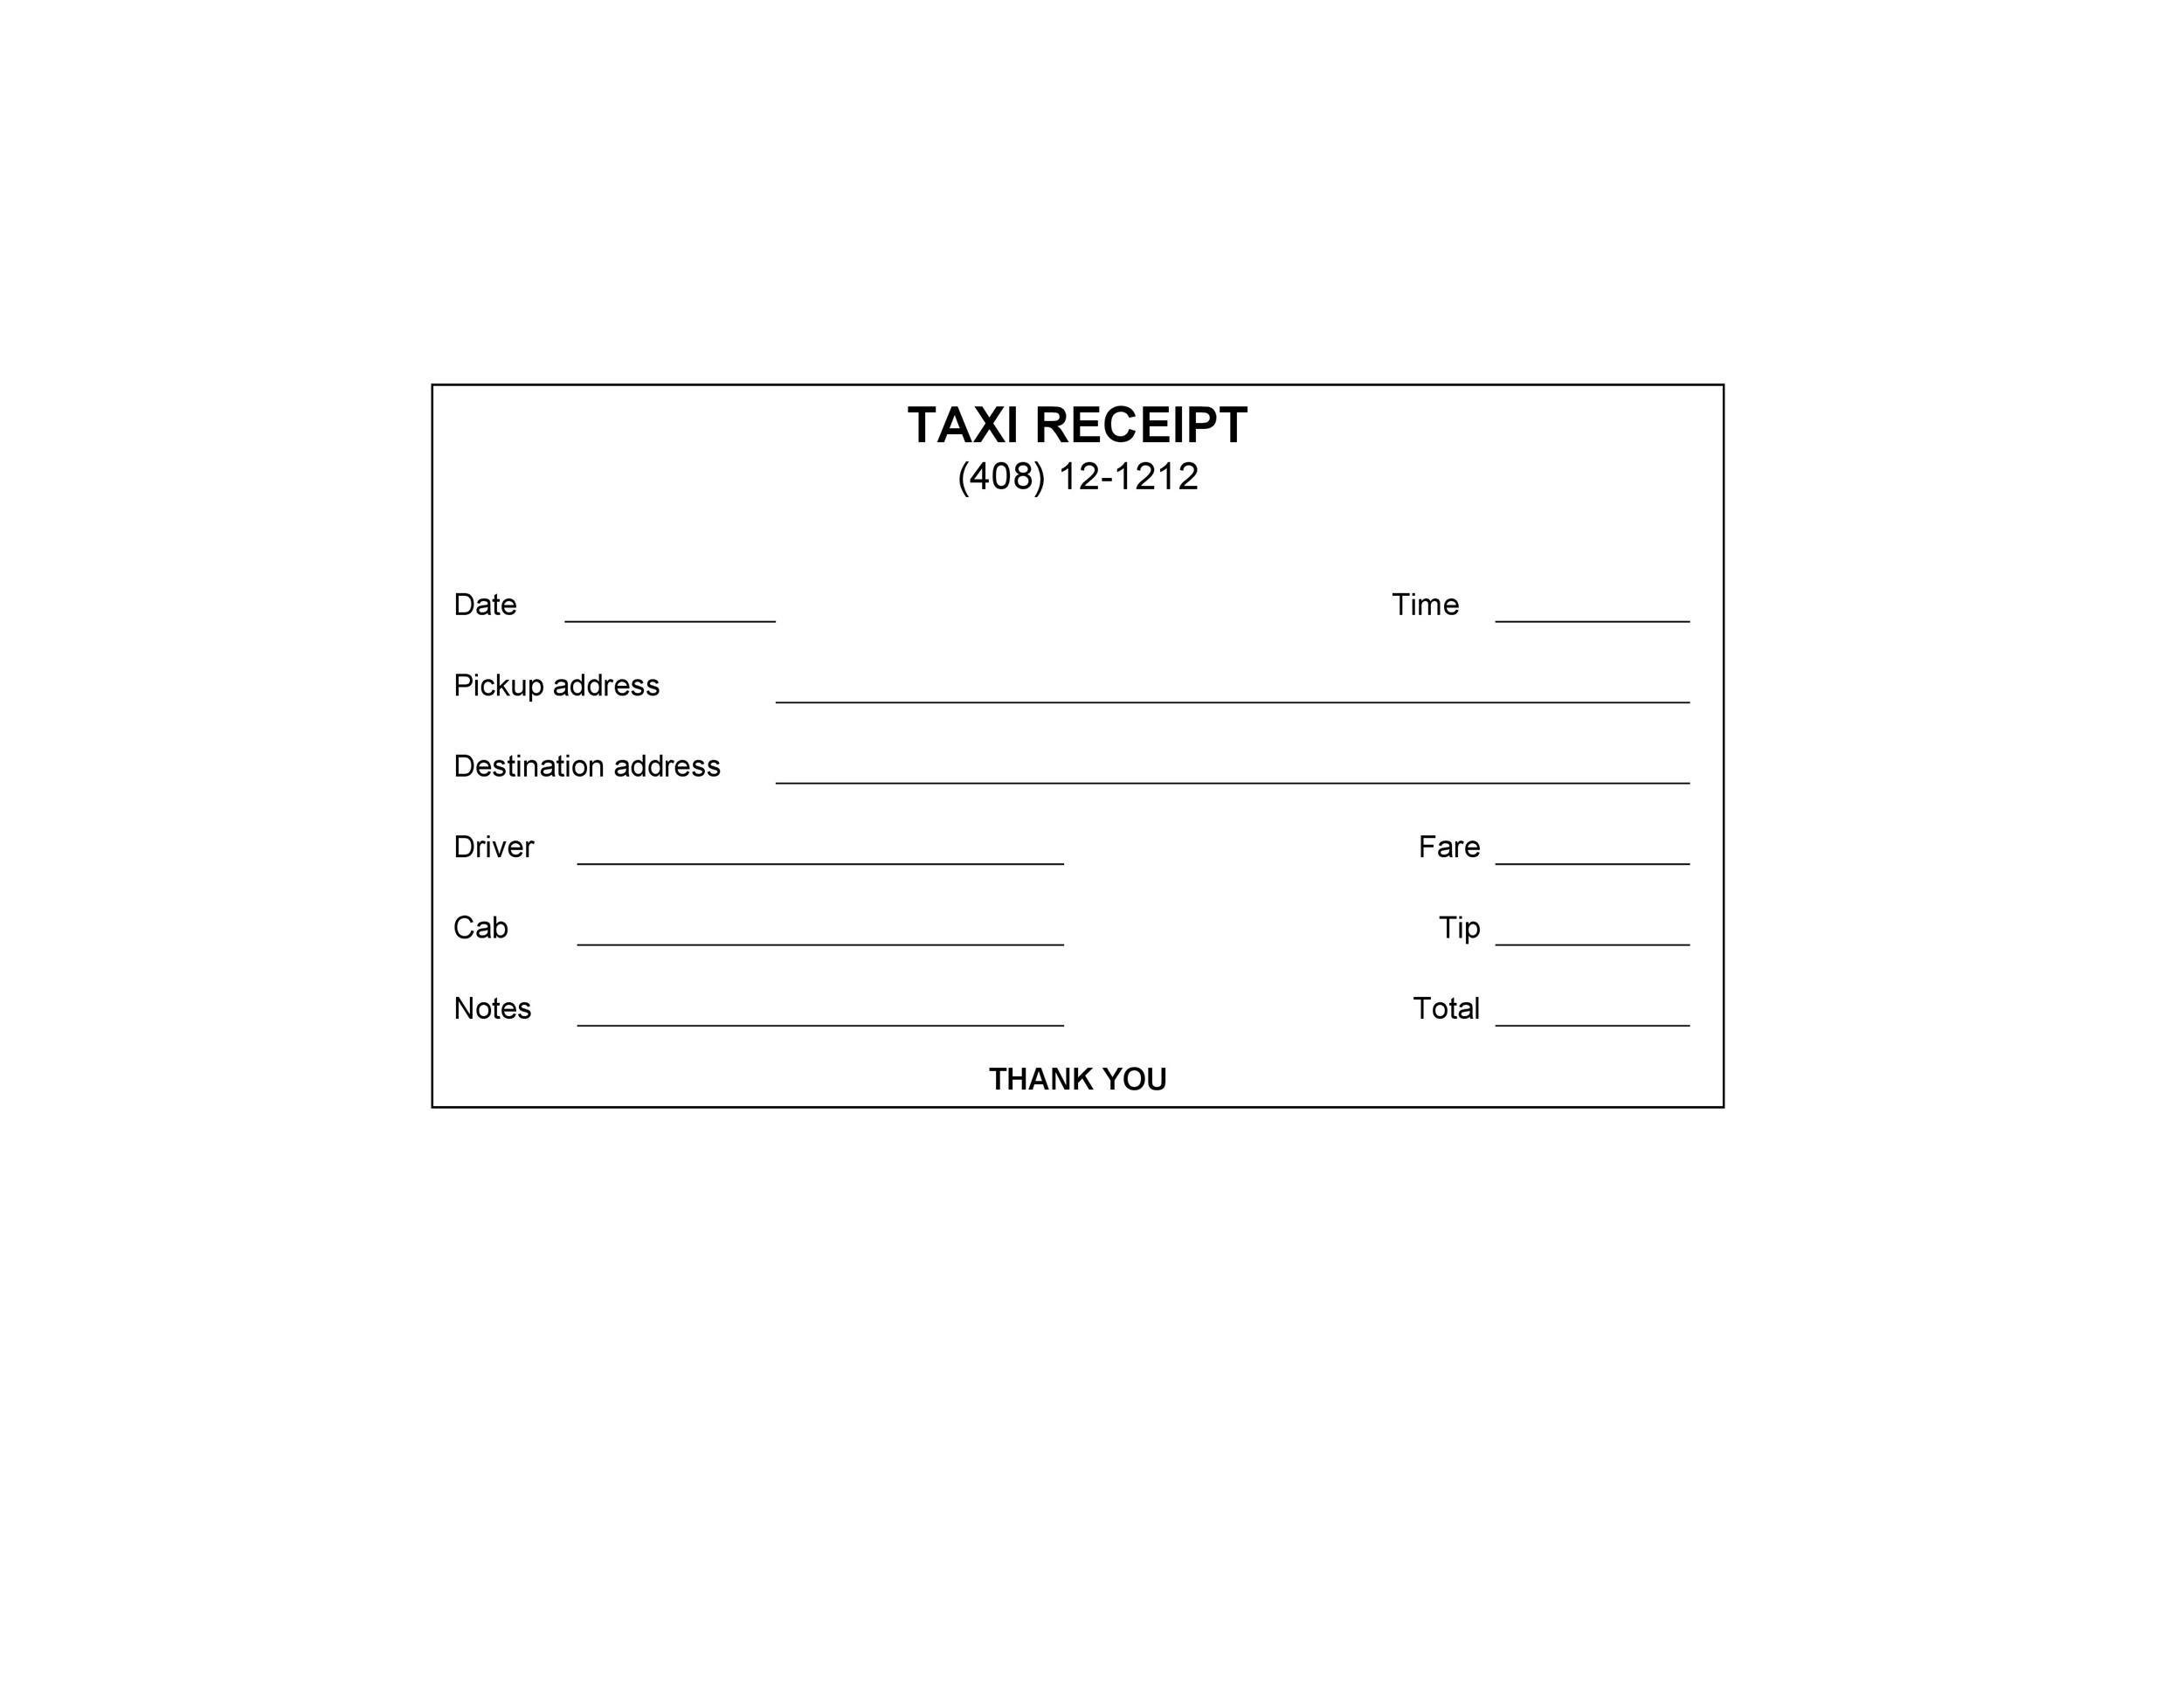 50 Free Receipt Templates Cash Sales Donation Taxi – Format for Receipt